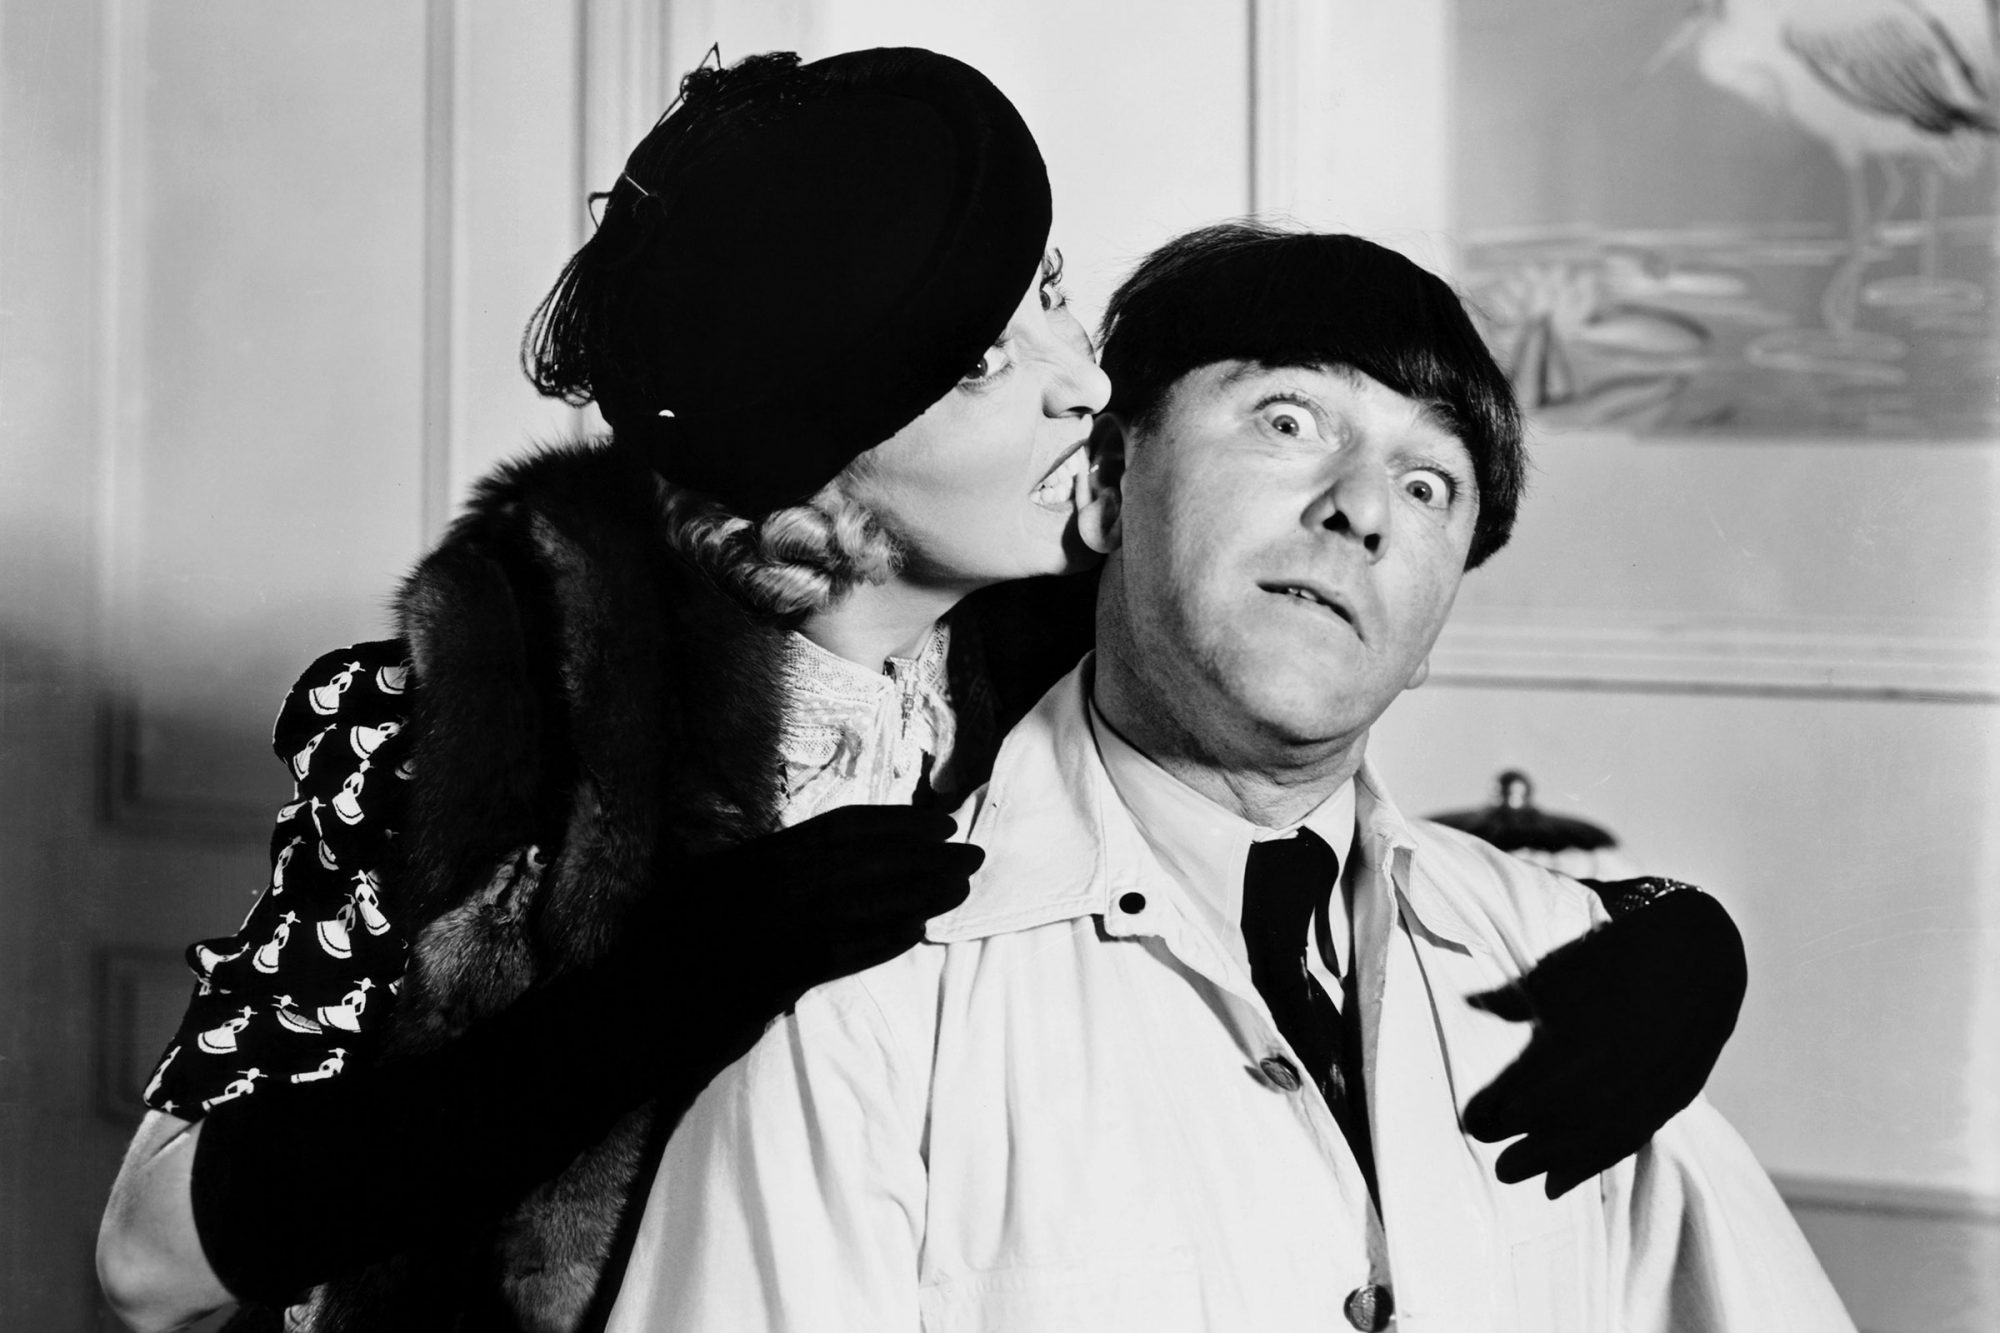 TASSELS IN THE AIR, from left, Gertrude Astor, Moe Howard, 1938